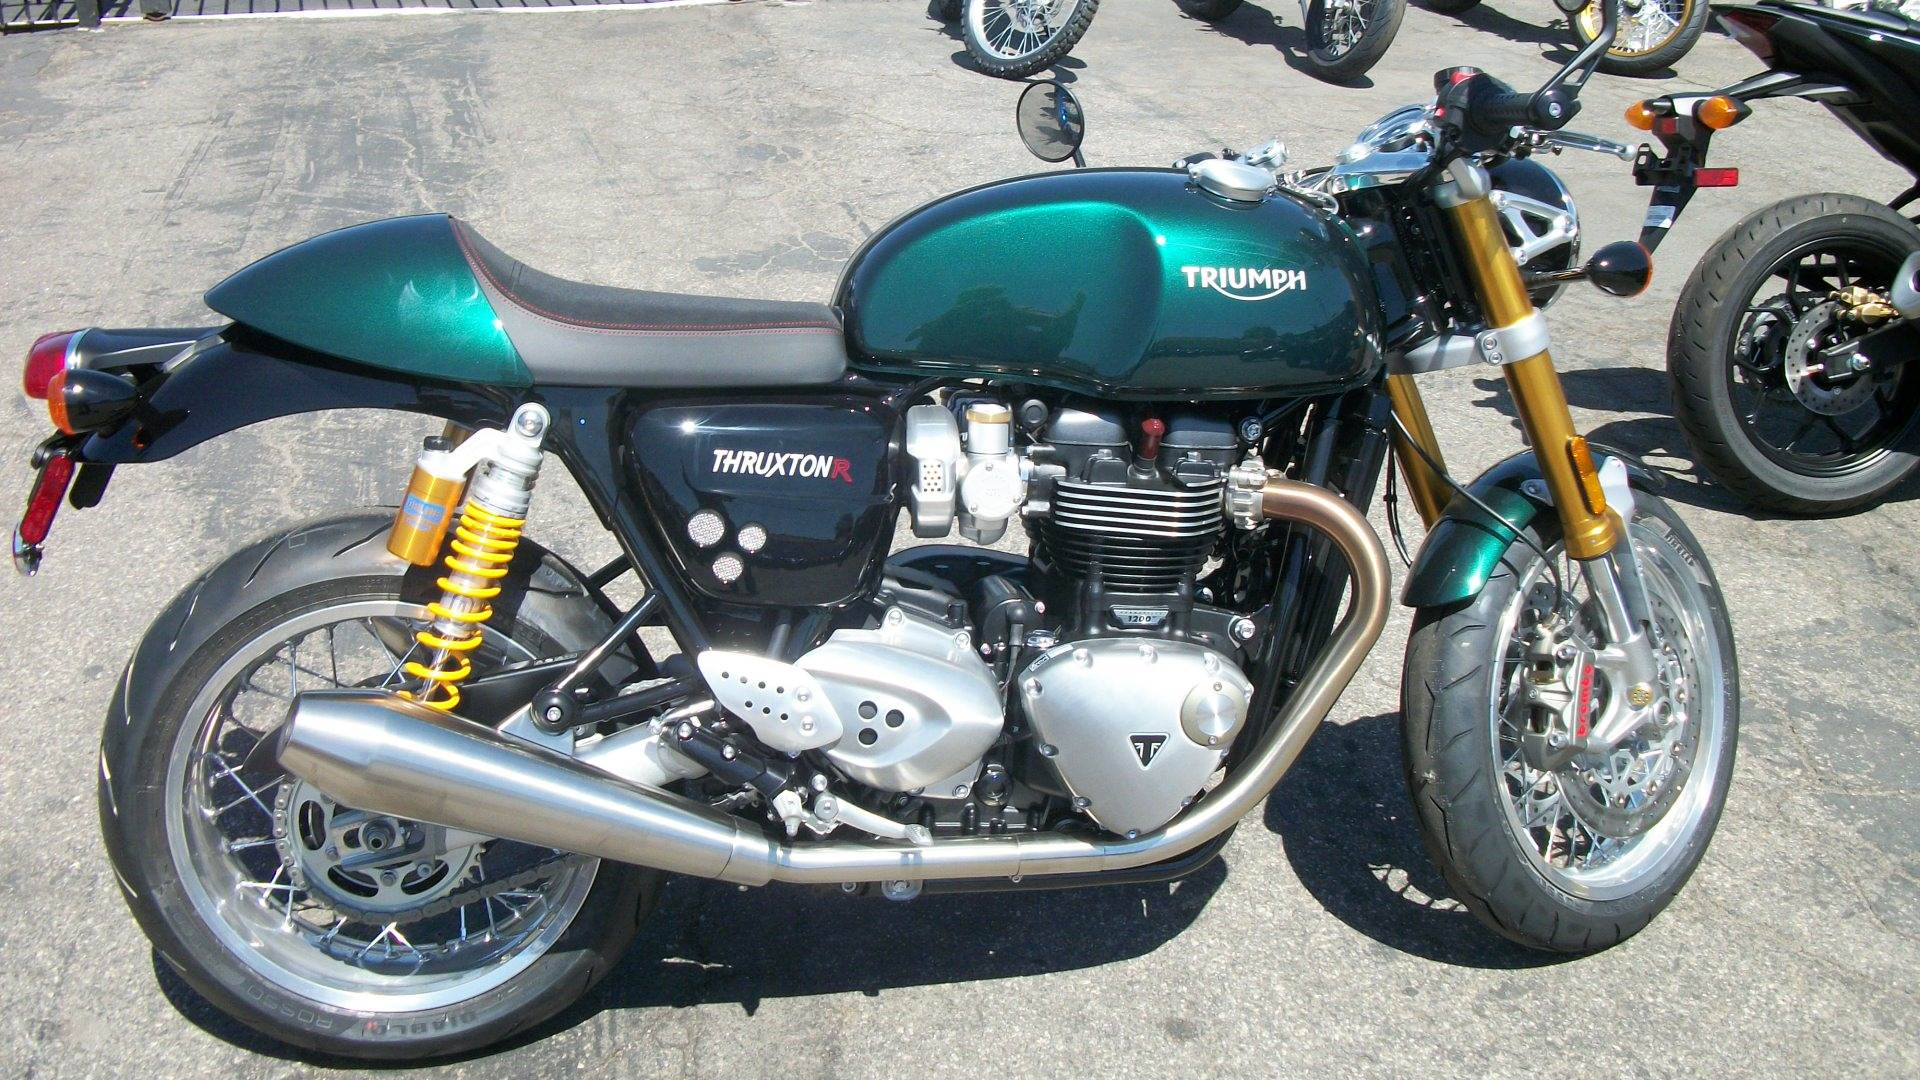 2019 Triumph Thruxton 1200 R in Simi Valley, California - Photo 2